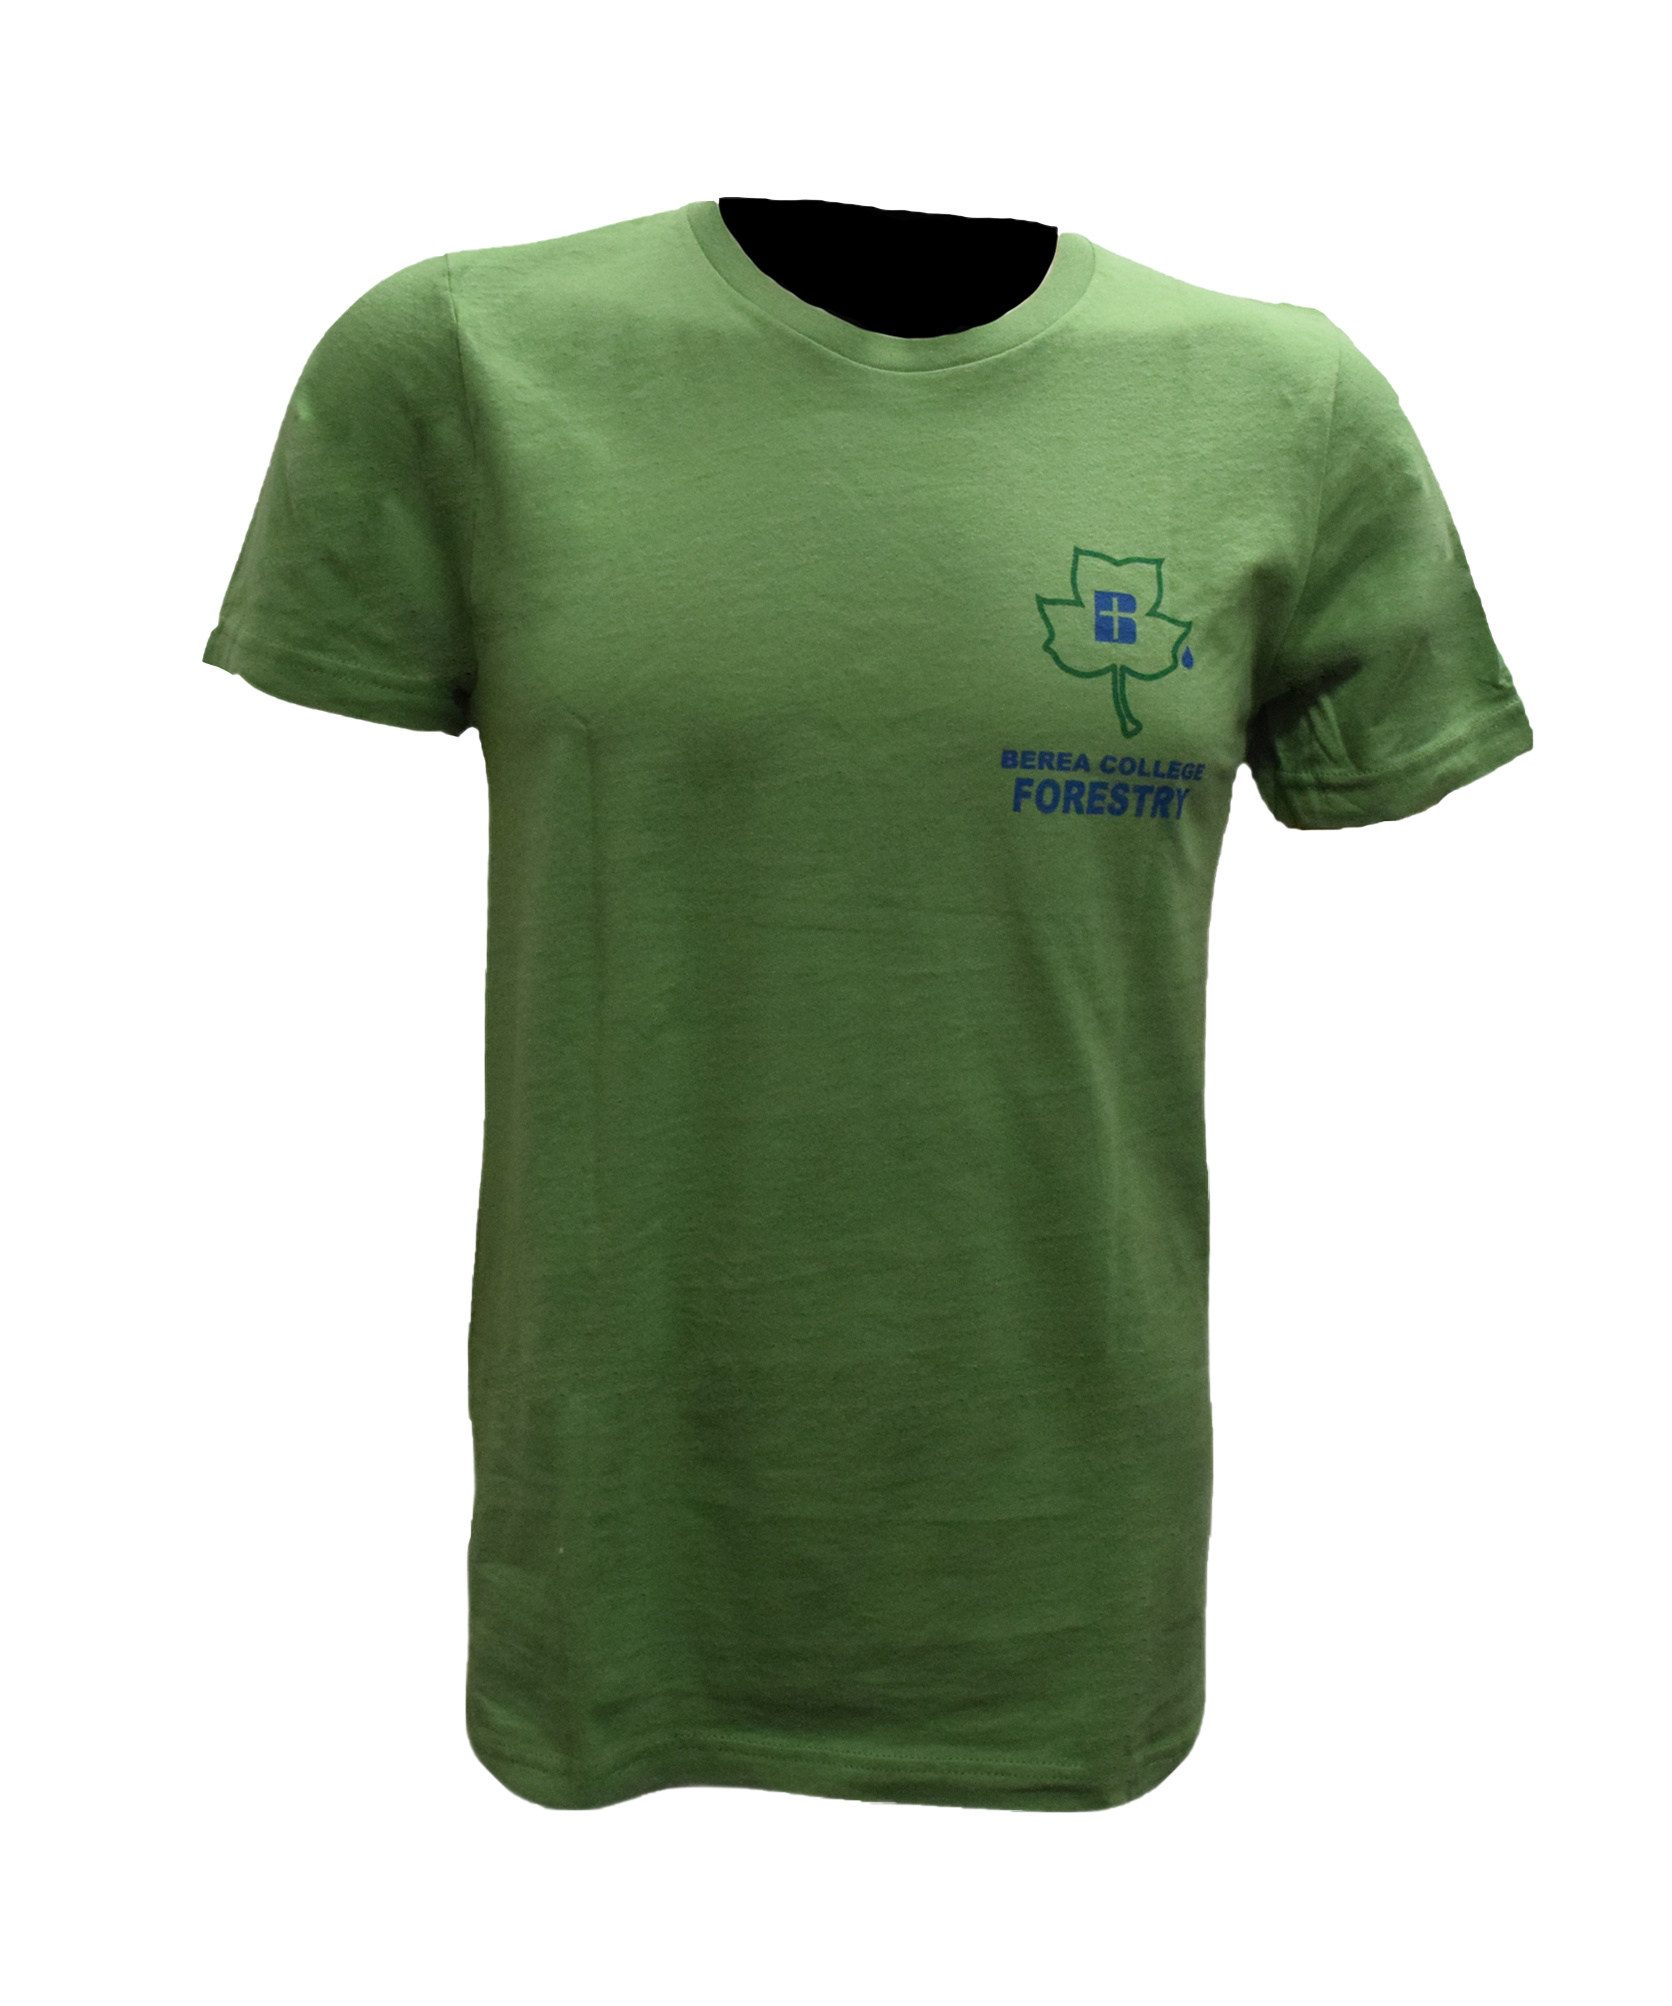 Forestry T-shirt-1